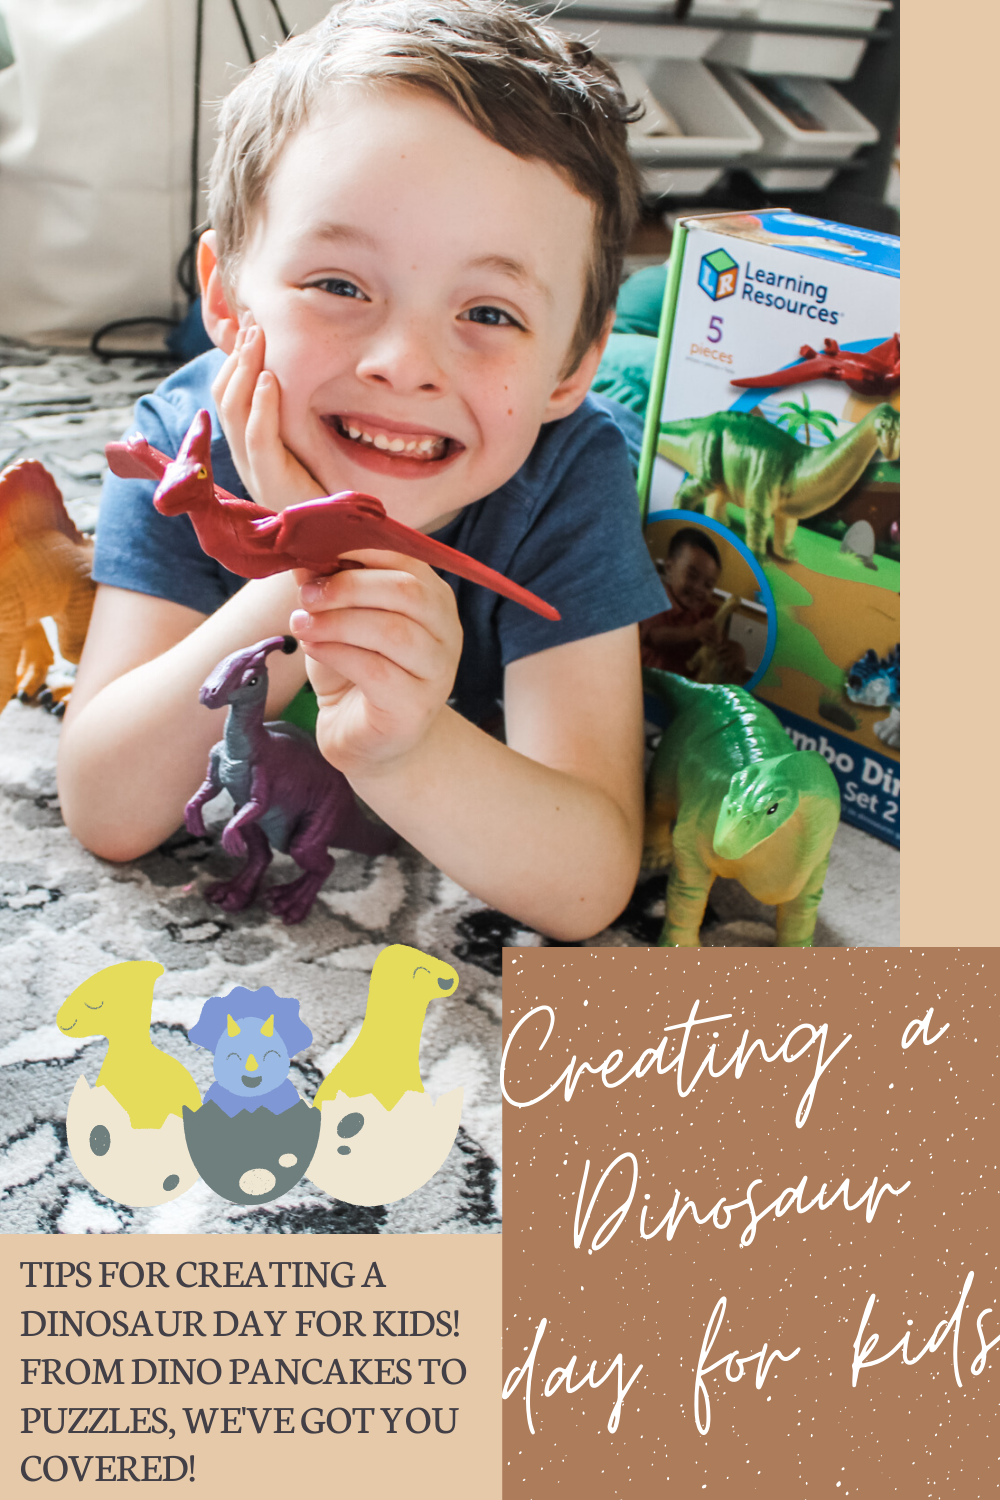 Creating a Dinosaur Day for Kids